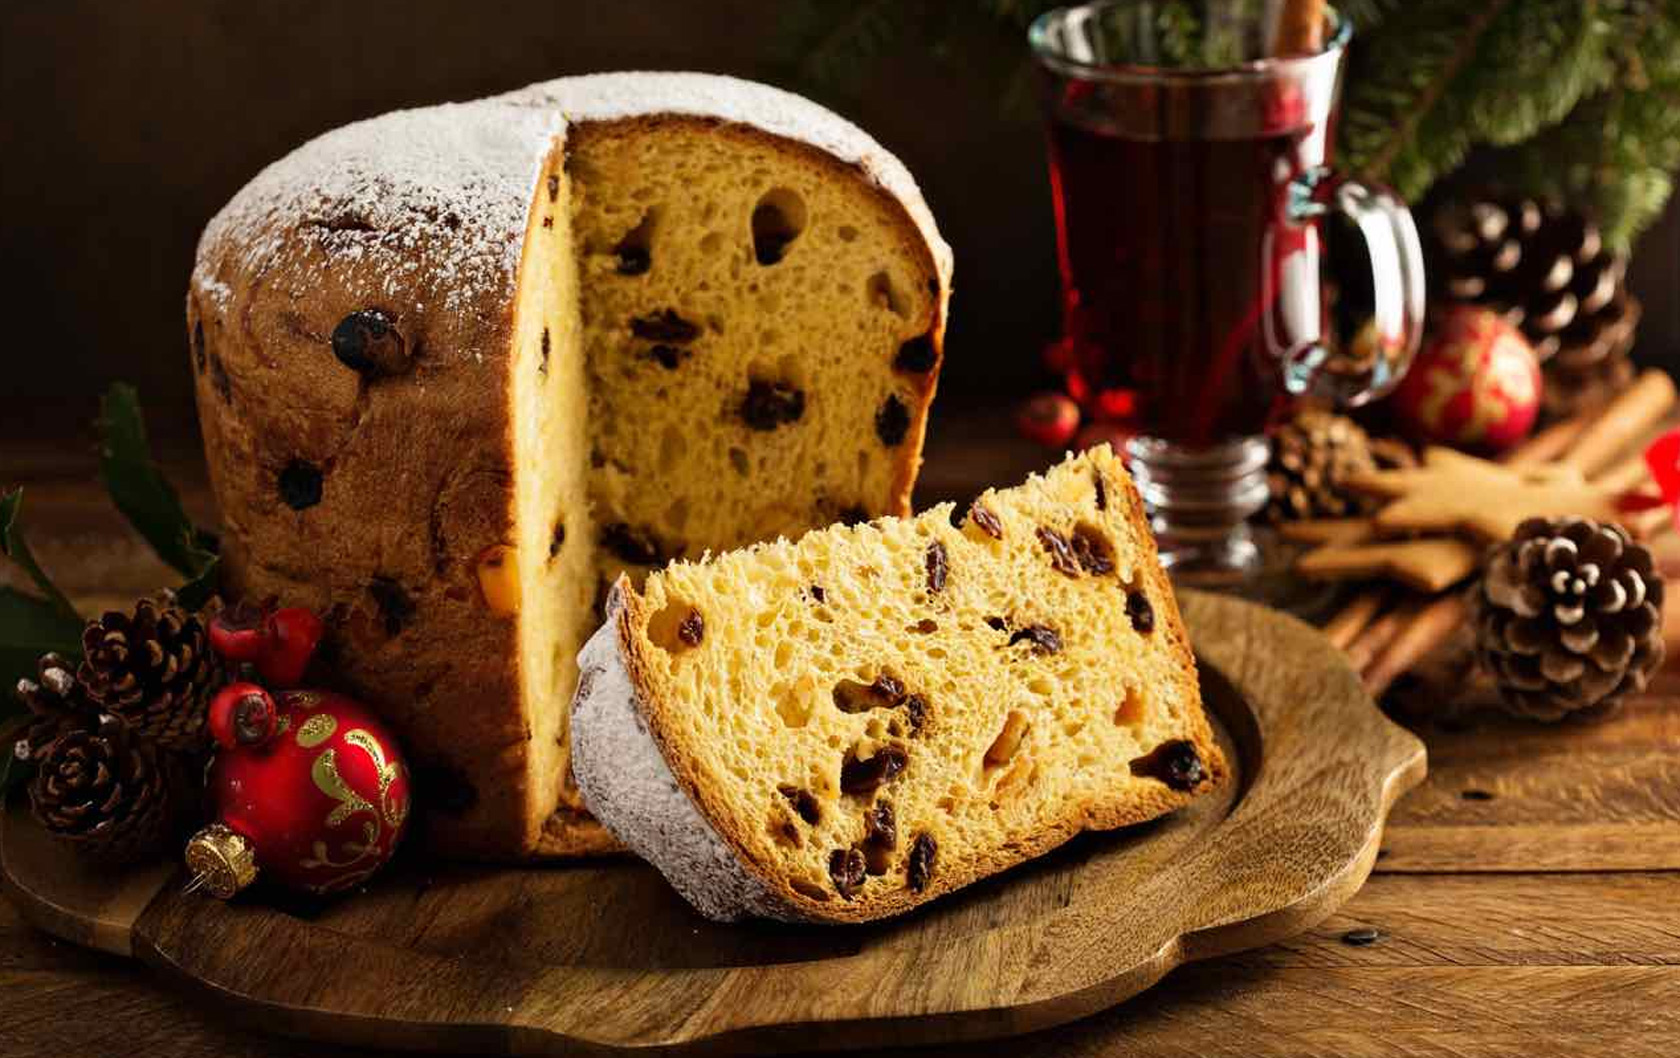 Three Christmas Traditions in Italy: Food, Family and that Weird Bread